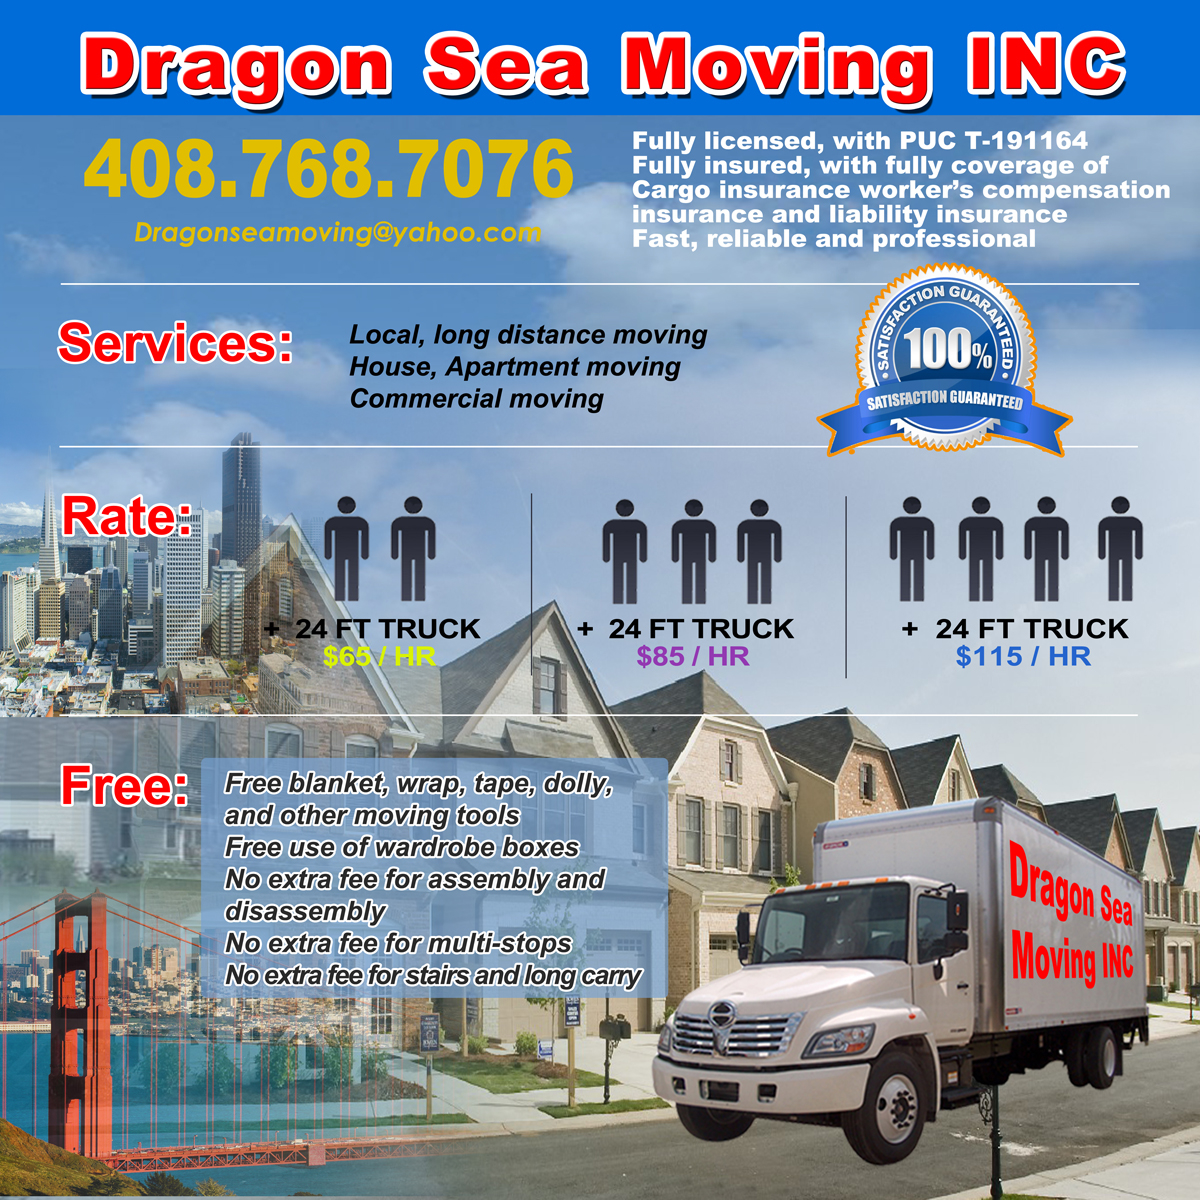 Dragon Sea Moving Inc. image 3